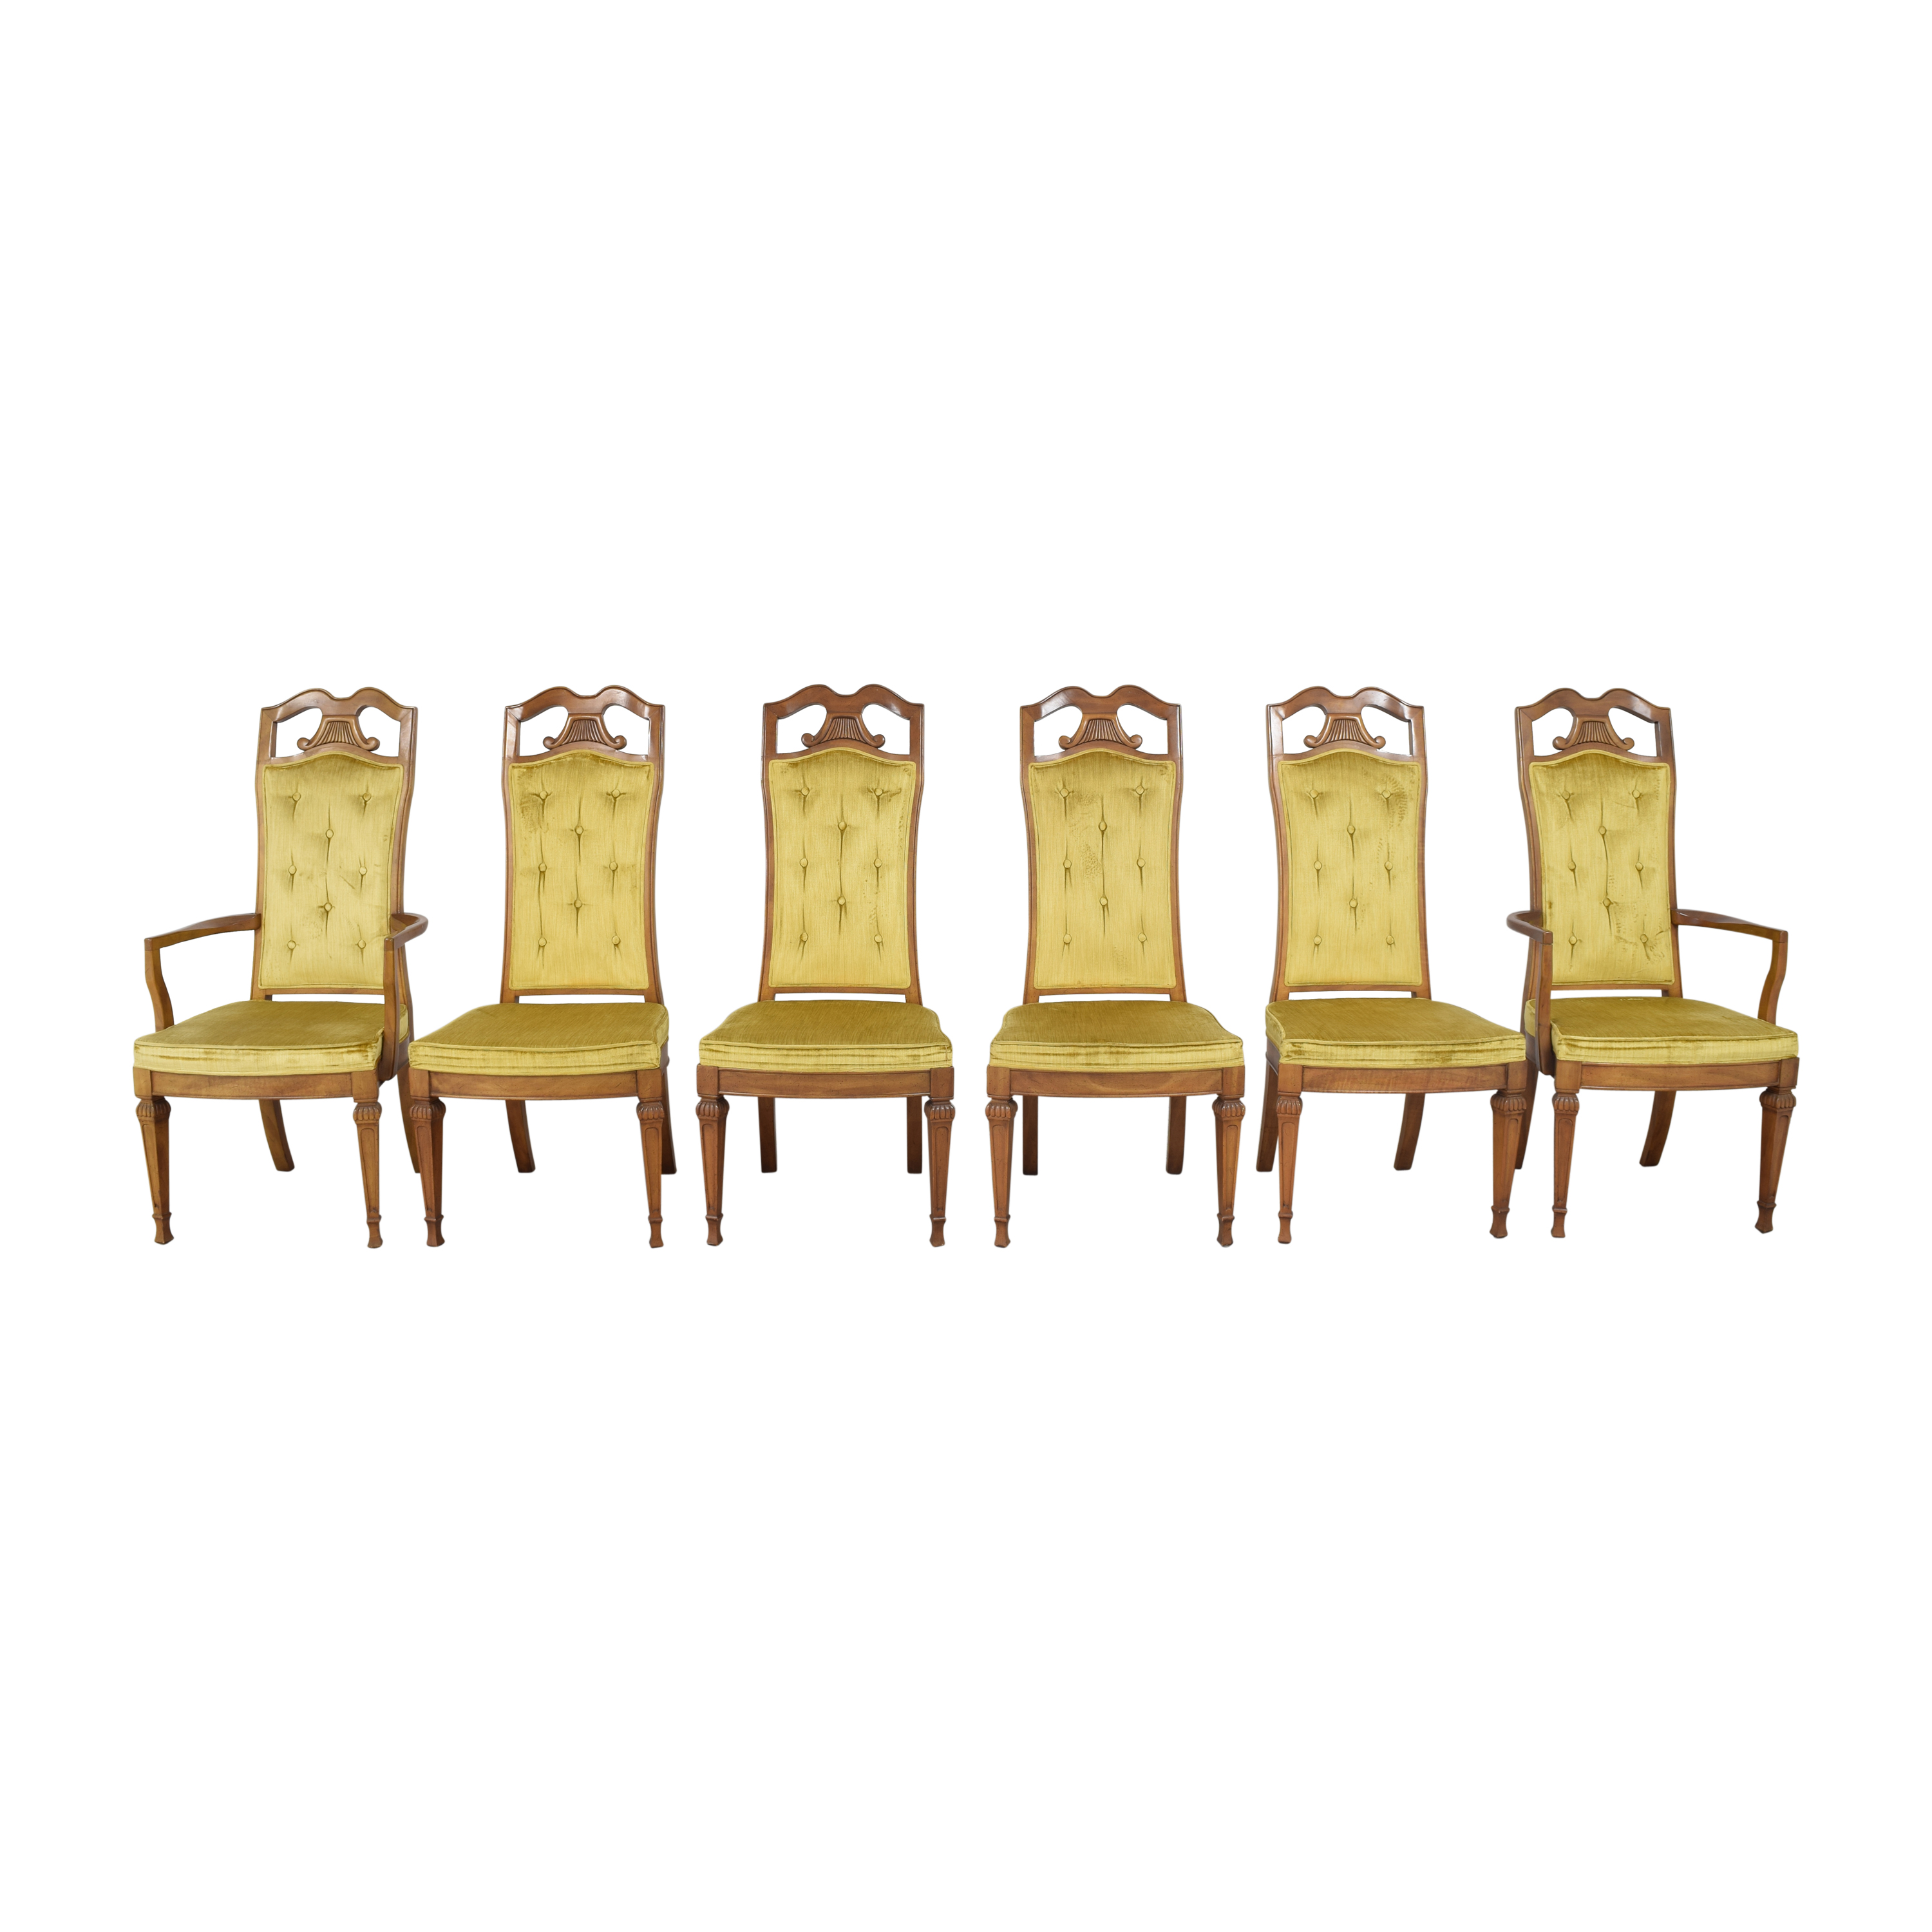 shop Detroit Furniture Distributing Co. Detroit Furniture Distributing Co. Upholstered Dining Chairs online